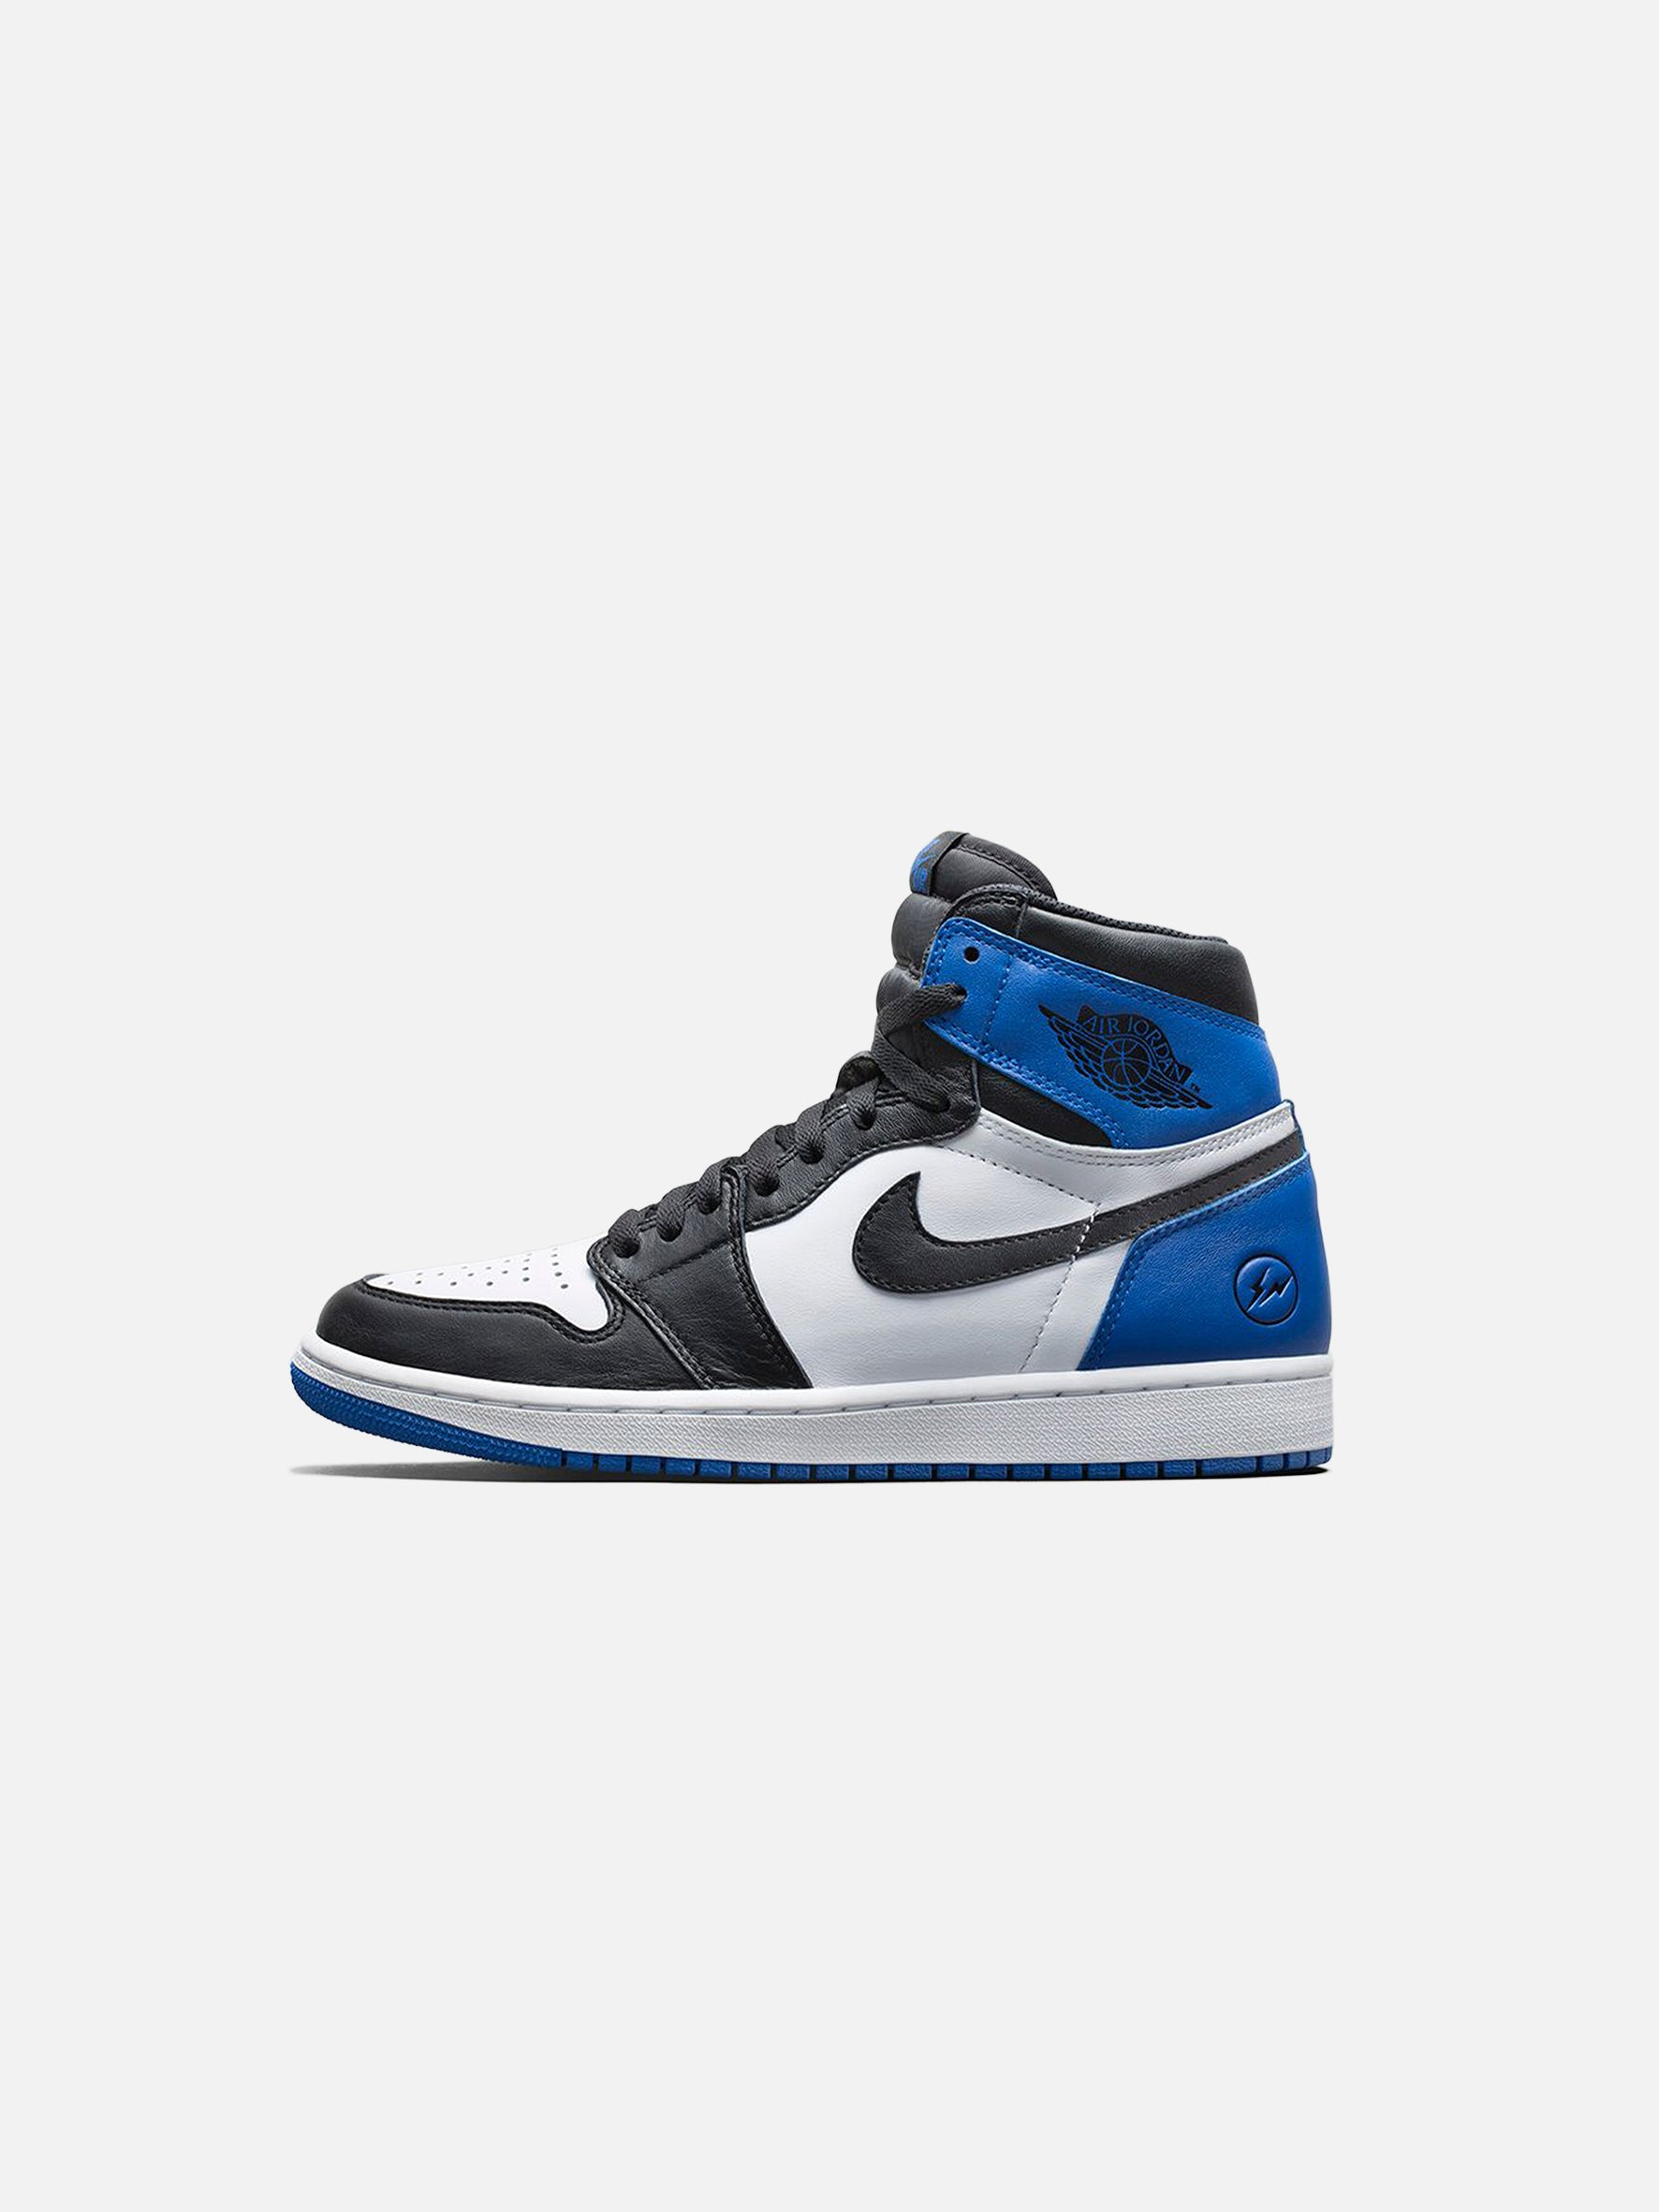 Nike x fragment design Air Jordan 1